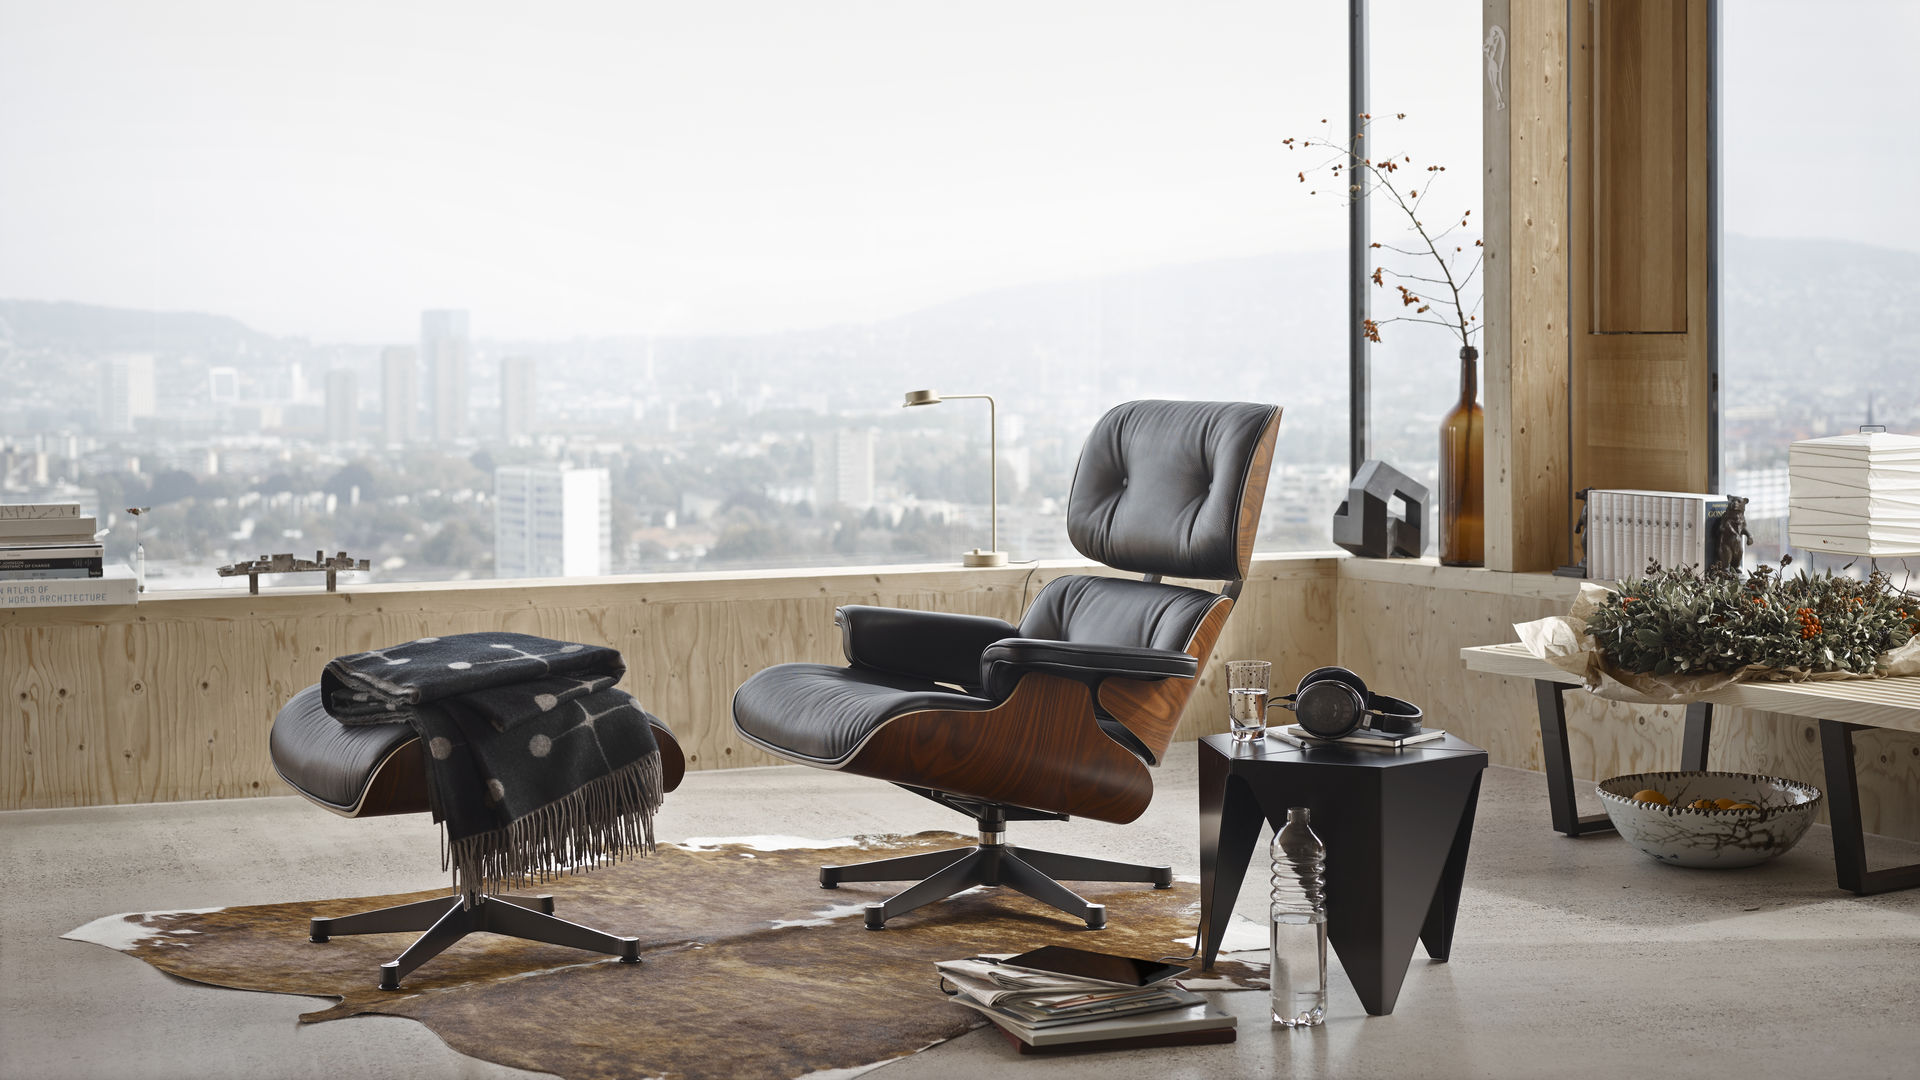 office lounge chair and ottoman via genie vitra prismatic table wool blanket web inspiration